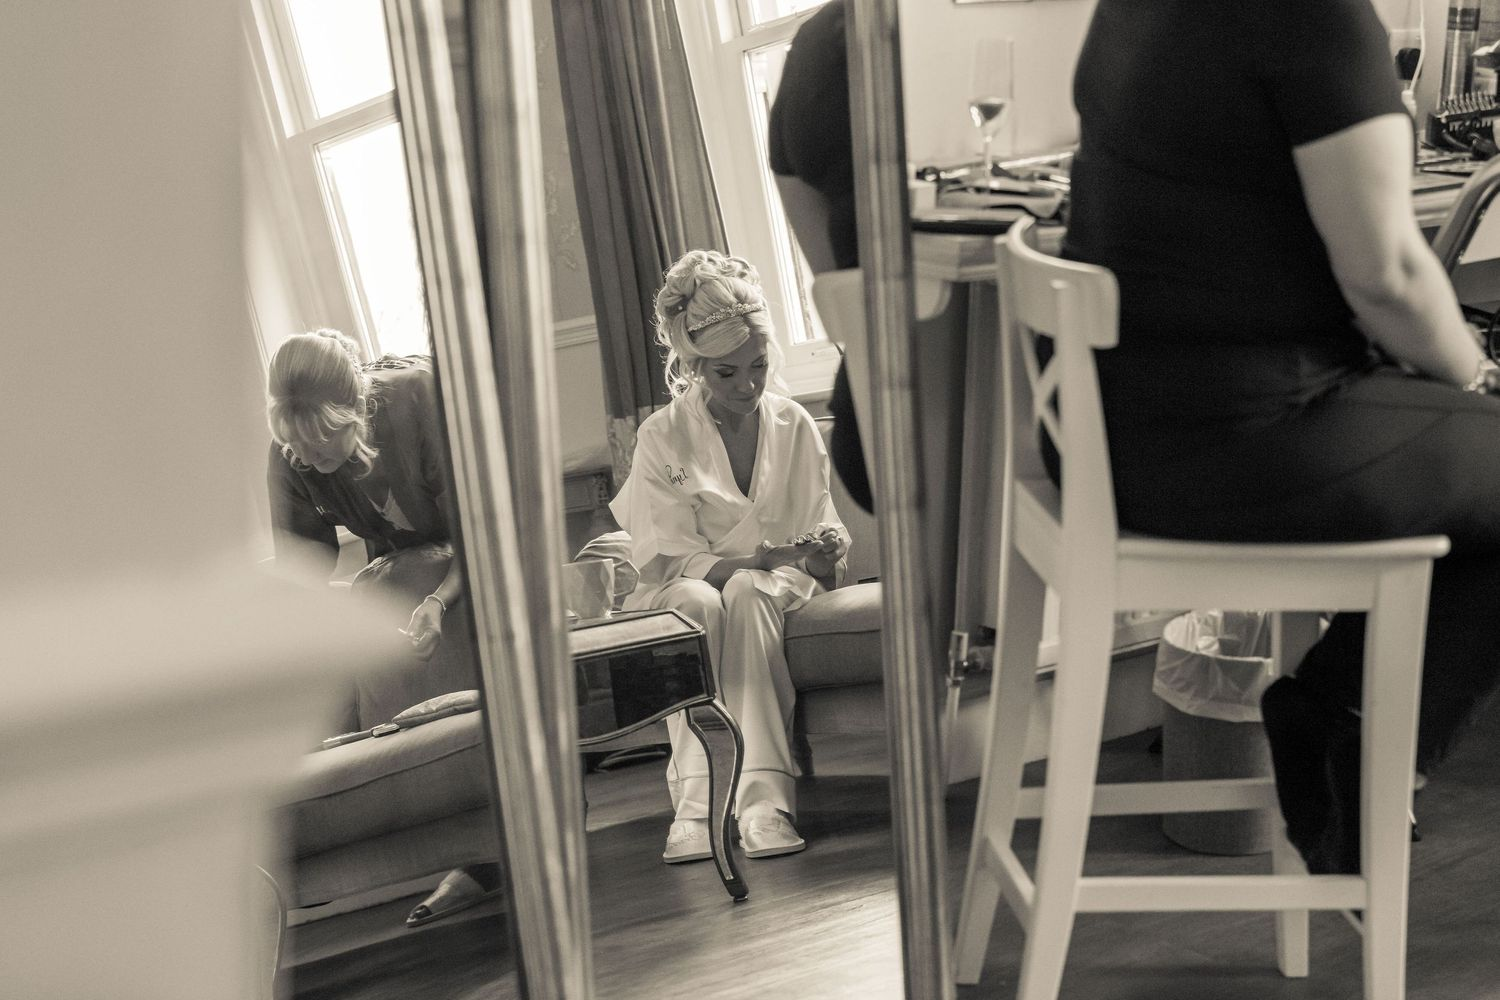 reflection shot in an ornate mirror of the bride sitting in her pyjamas during the bridal suite